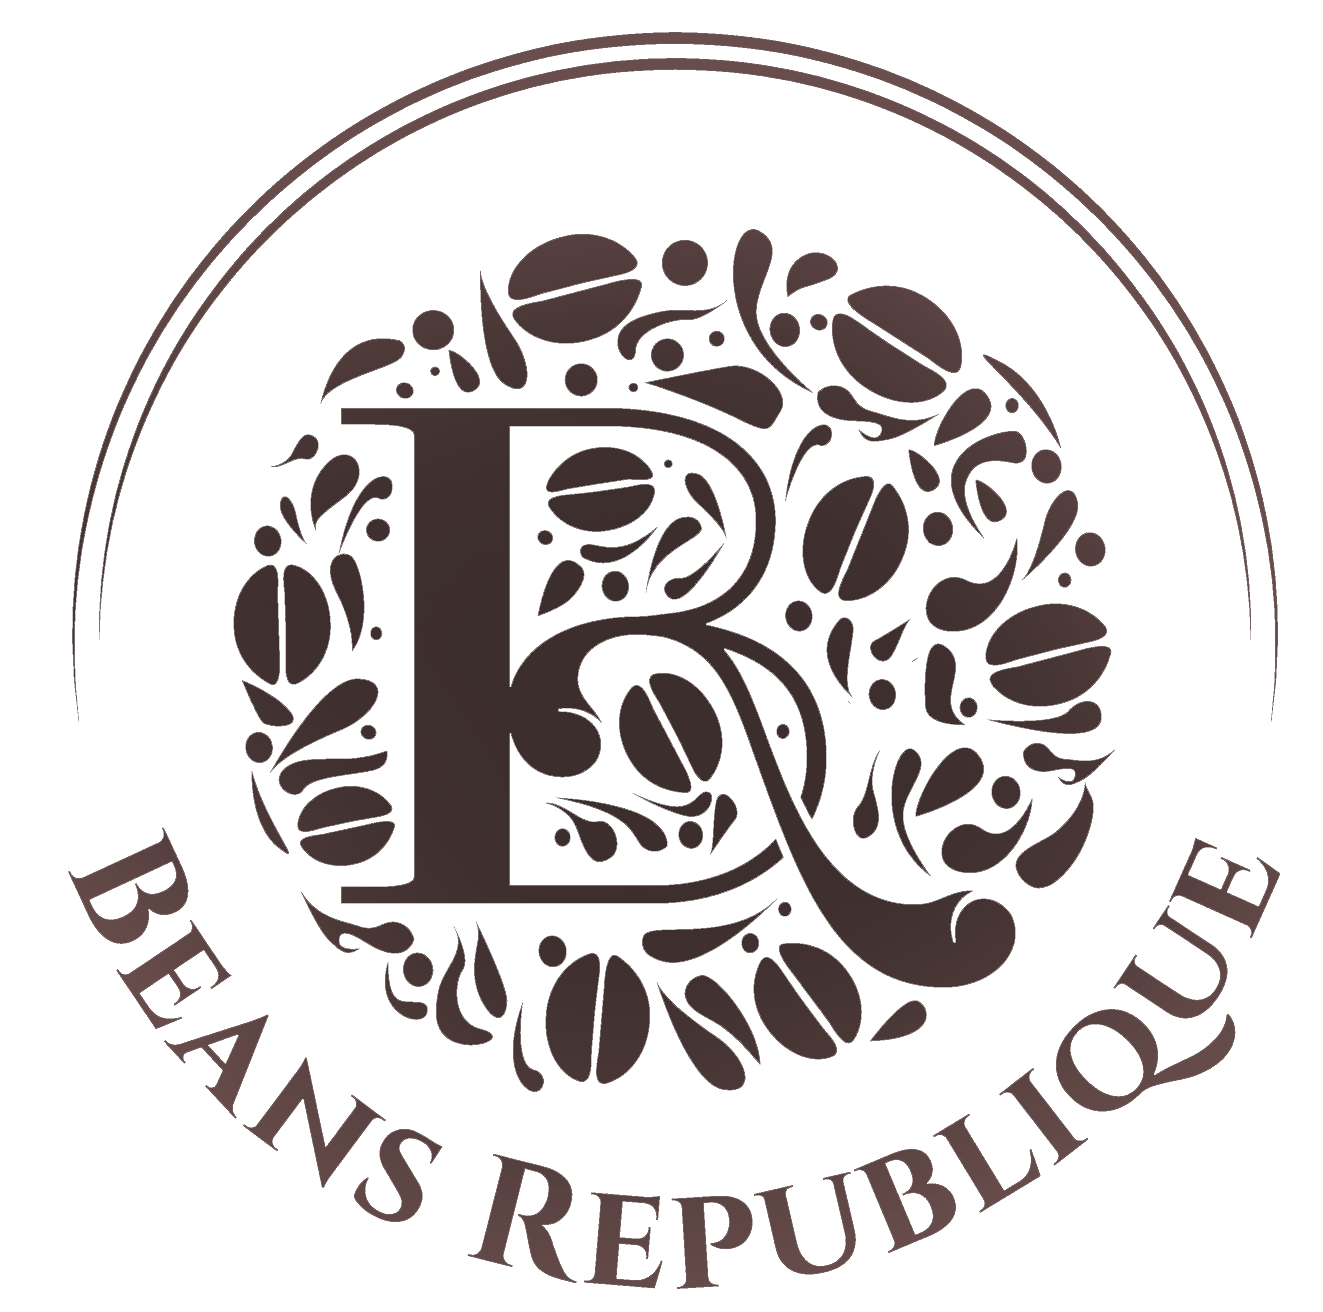 Beans Republique Franchise